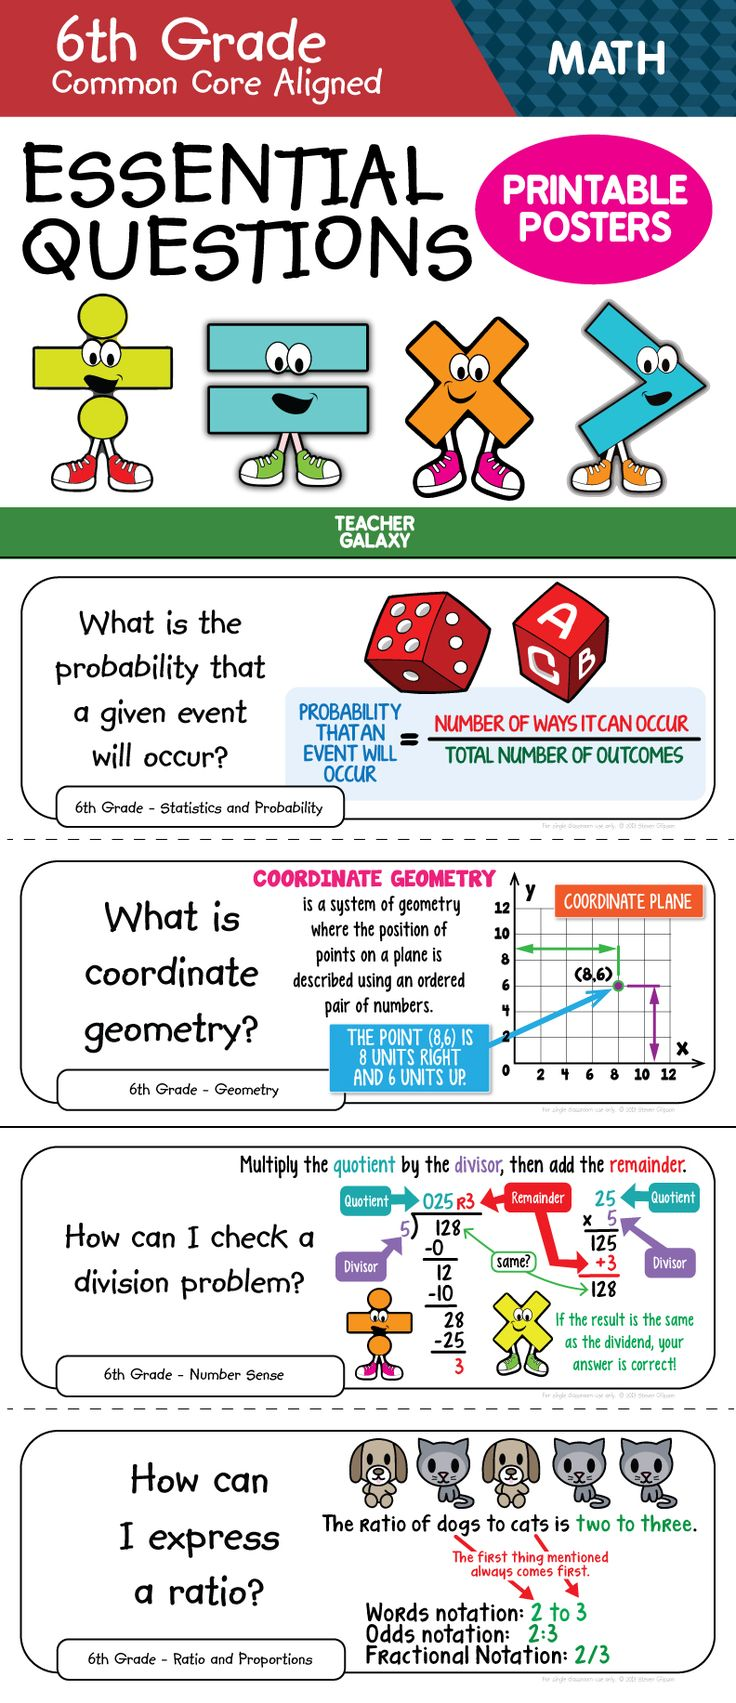 worksheet 7th Grade Math Worksheets Common Core best 25 common core science ideas on pinterest adult high bring the sixth grade math essential questions to life with these easy use